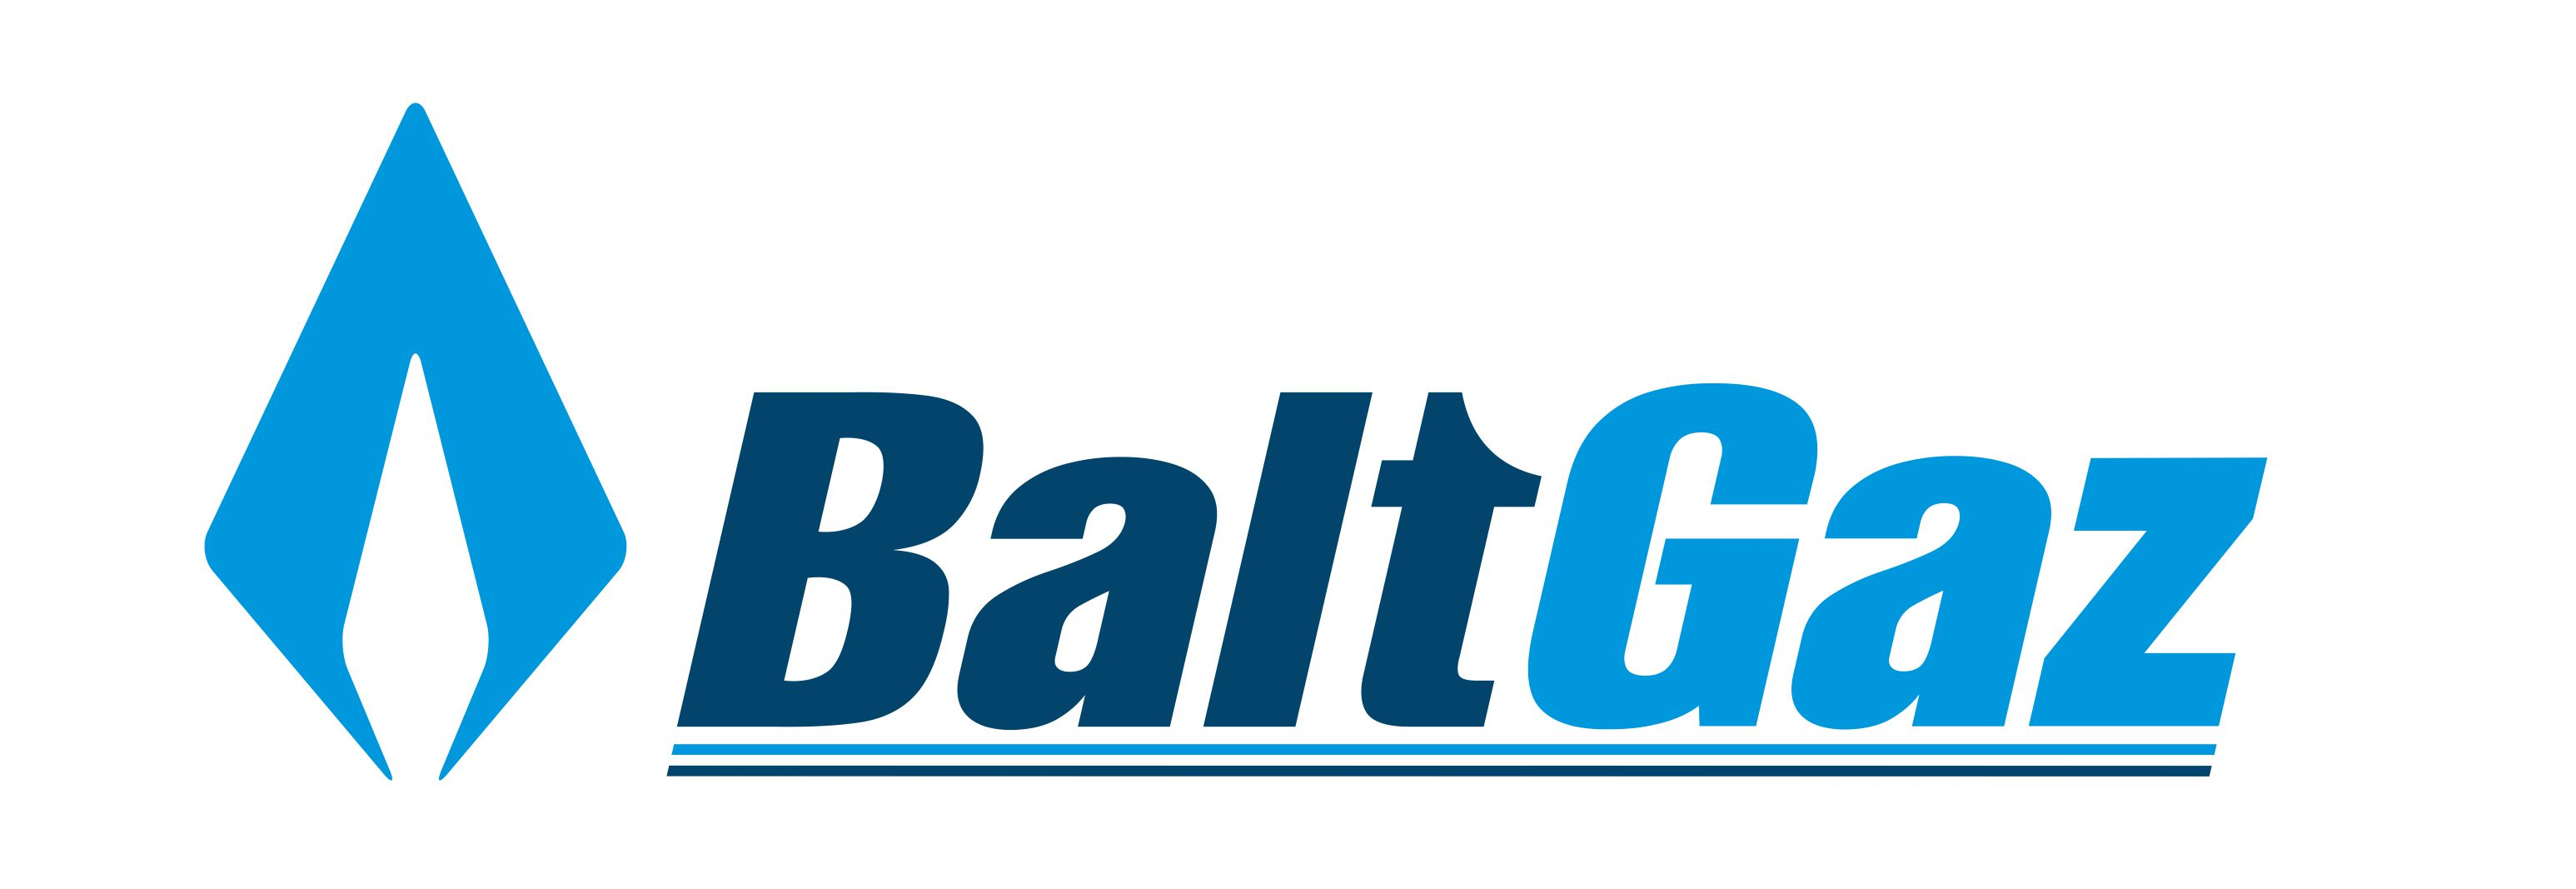 Baltgaz Logo Wallpaper